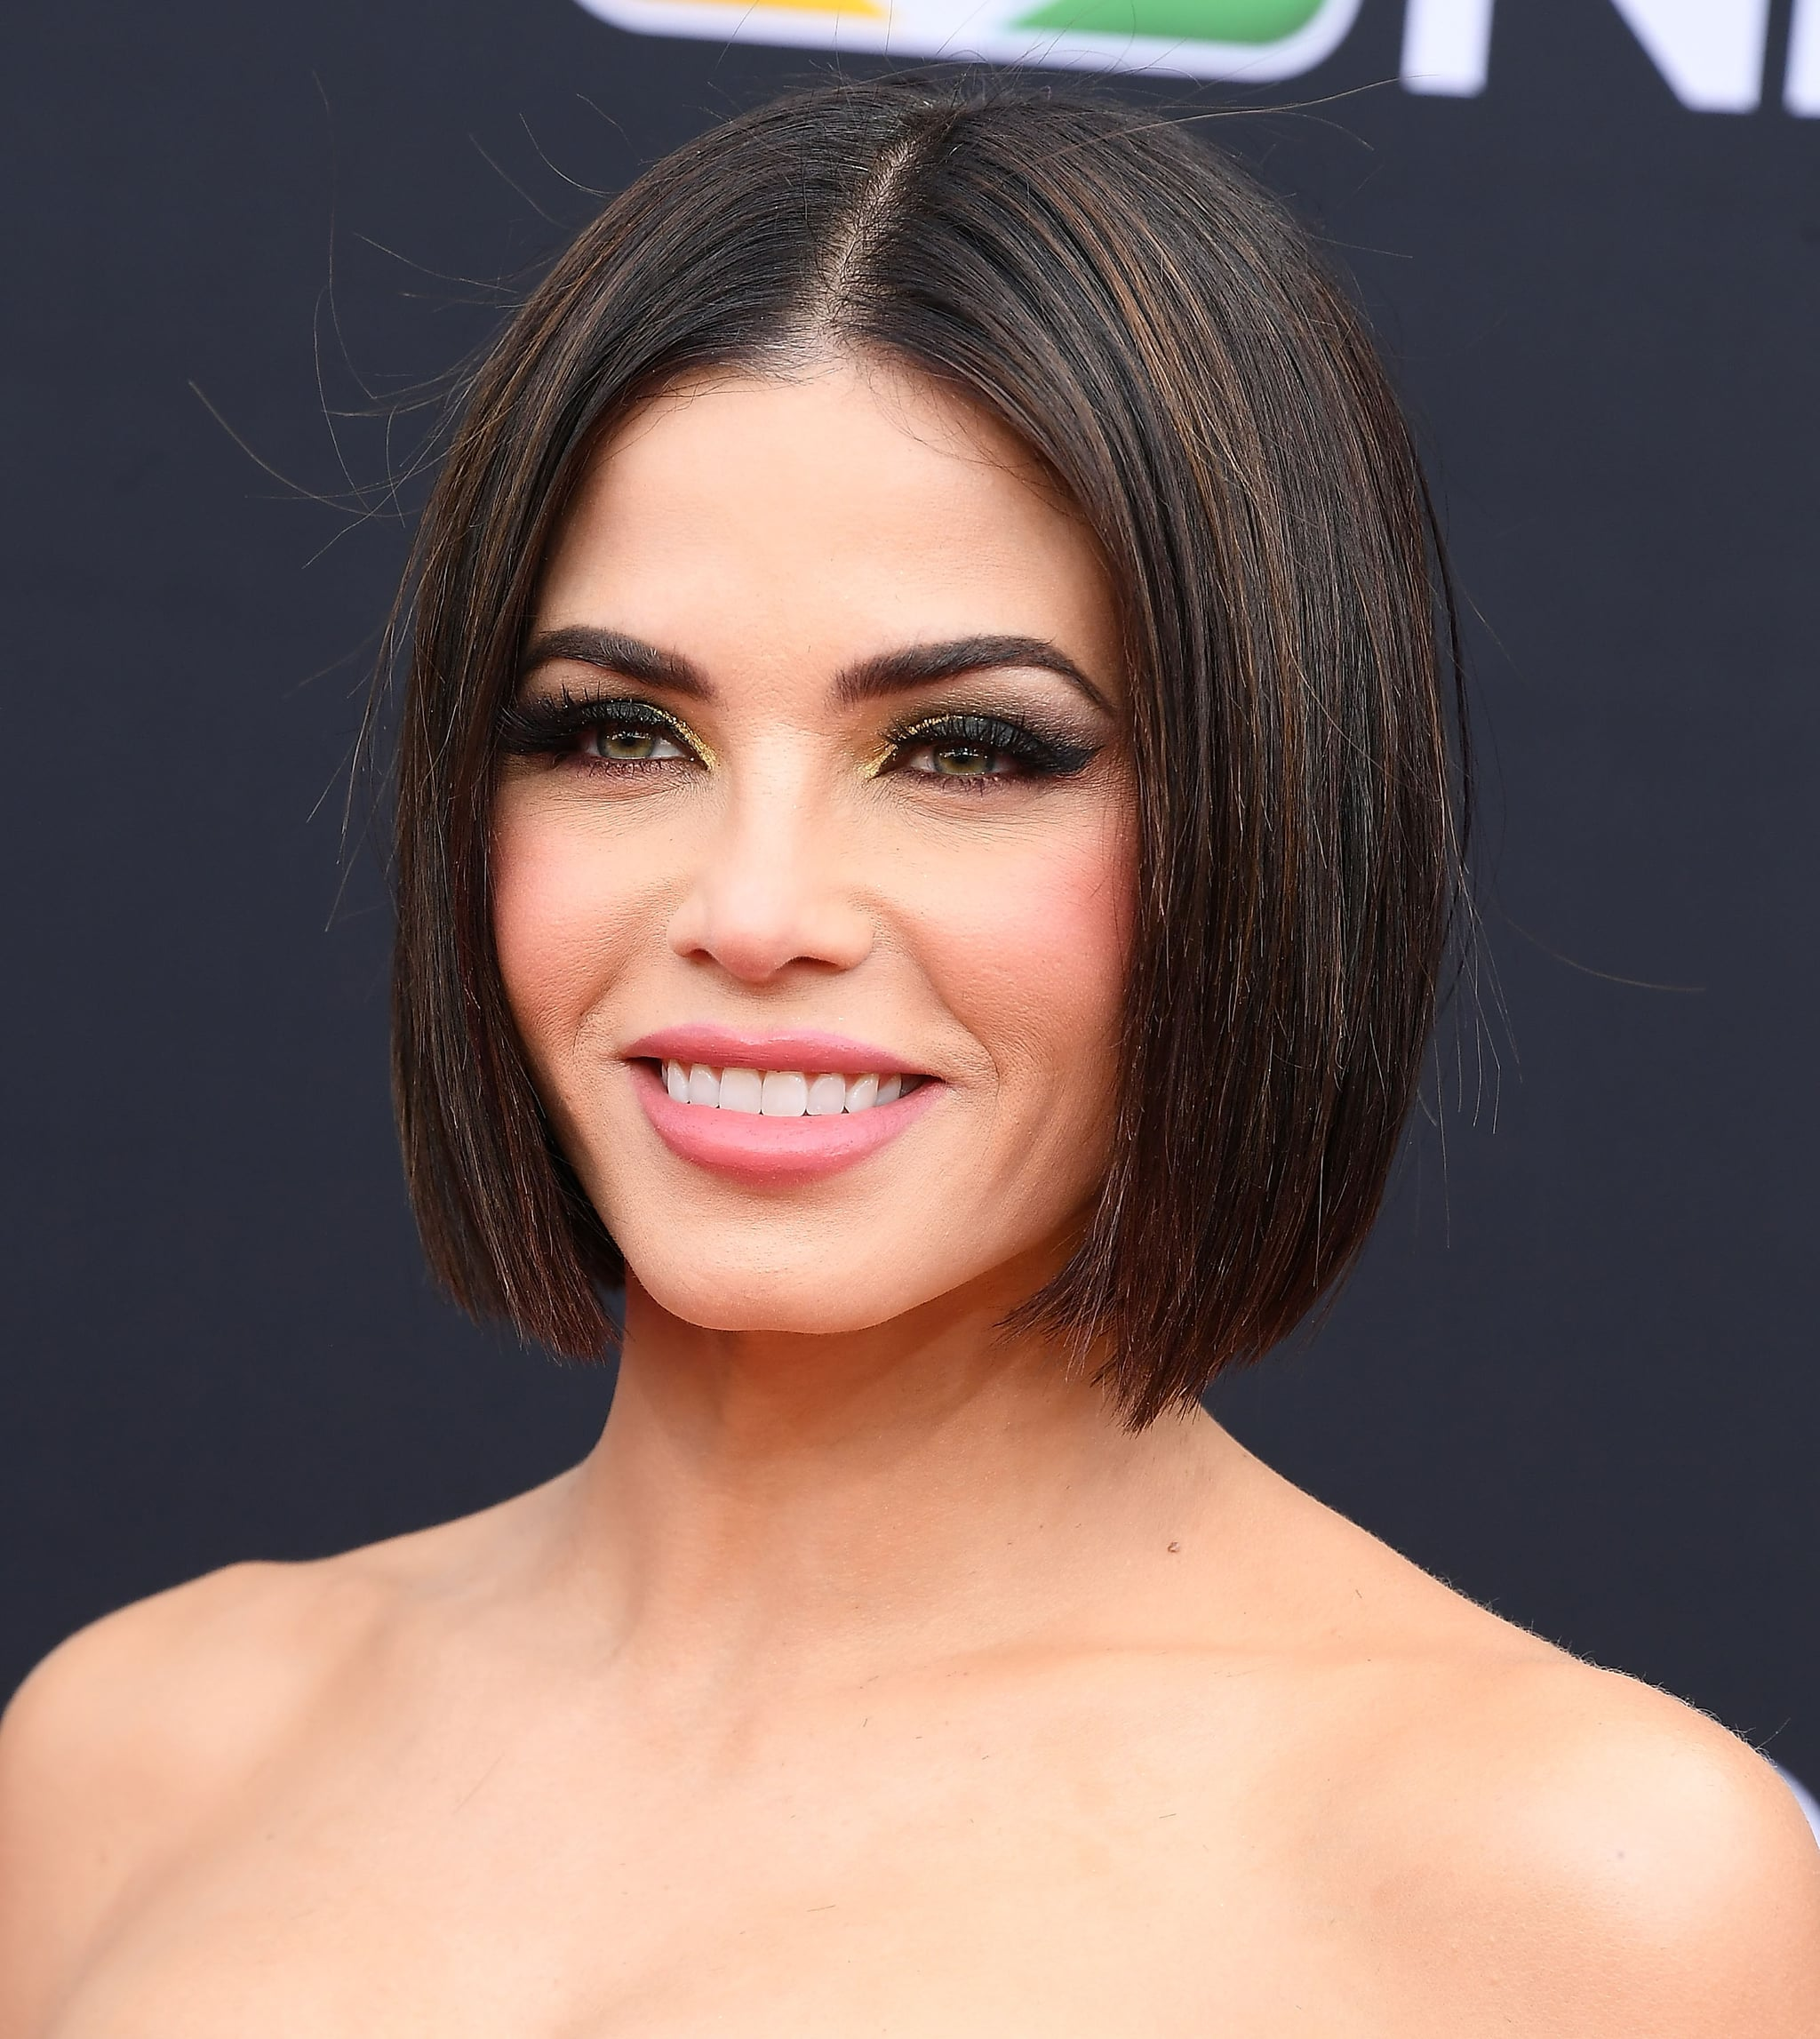 LAS VEGAS, NV - MAY 20:  Jenna Dewan arrives at the 2018 Billboard Music Awards at MGM Grand Garden Arena on May 20, 2018 in Las Vegas, Nevada.  (Photo by Steve Granitz/WireImage)